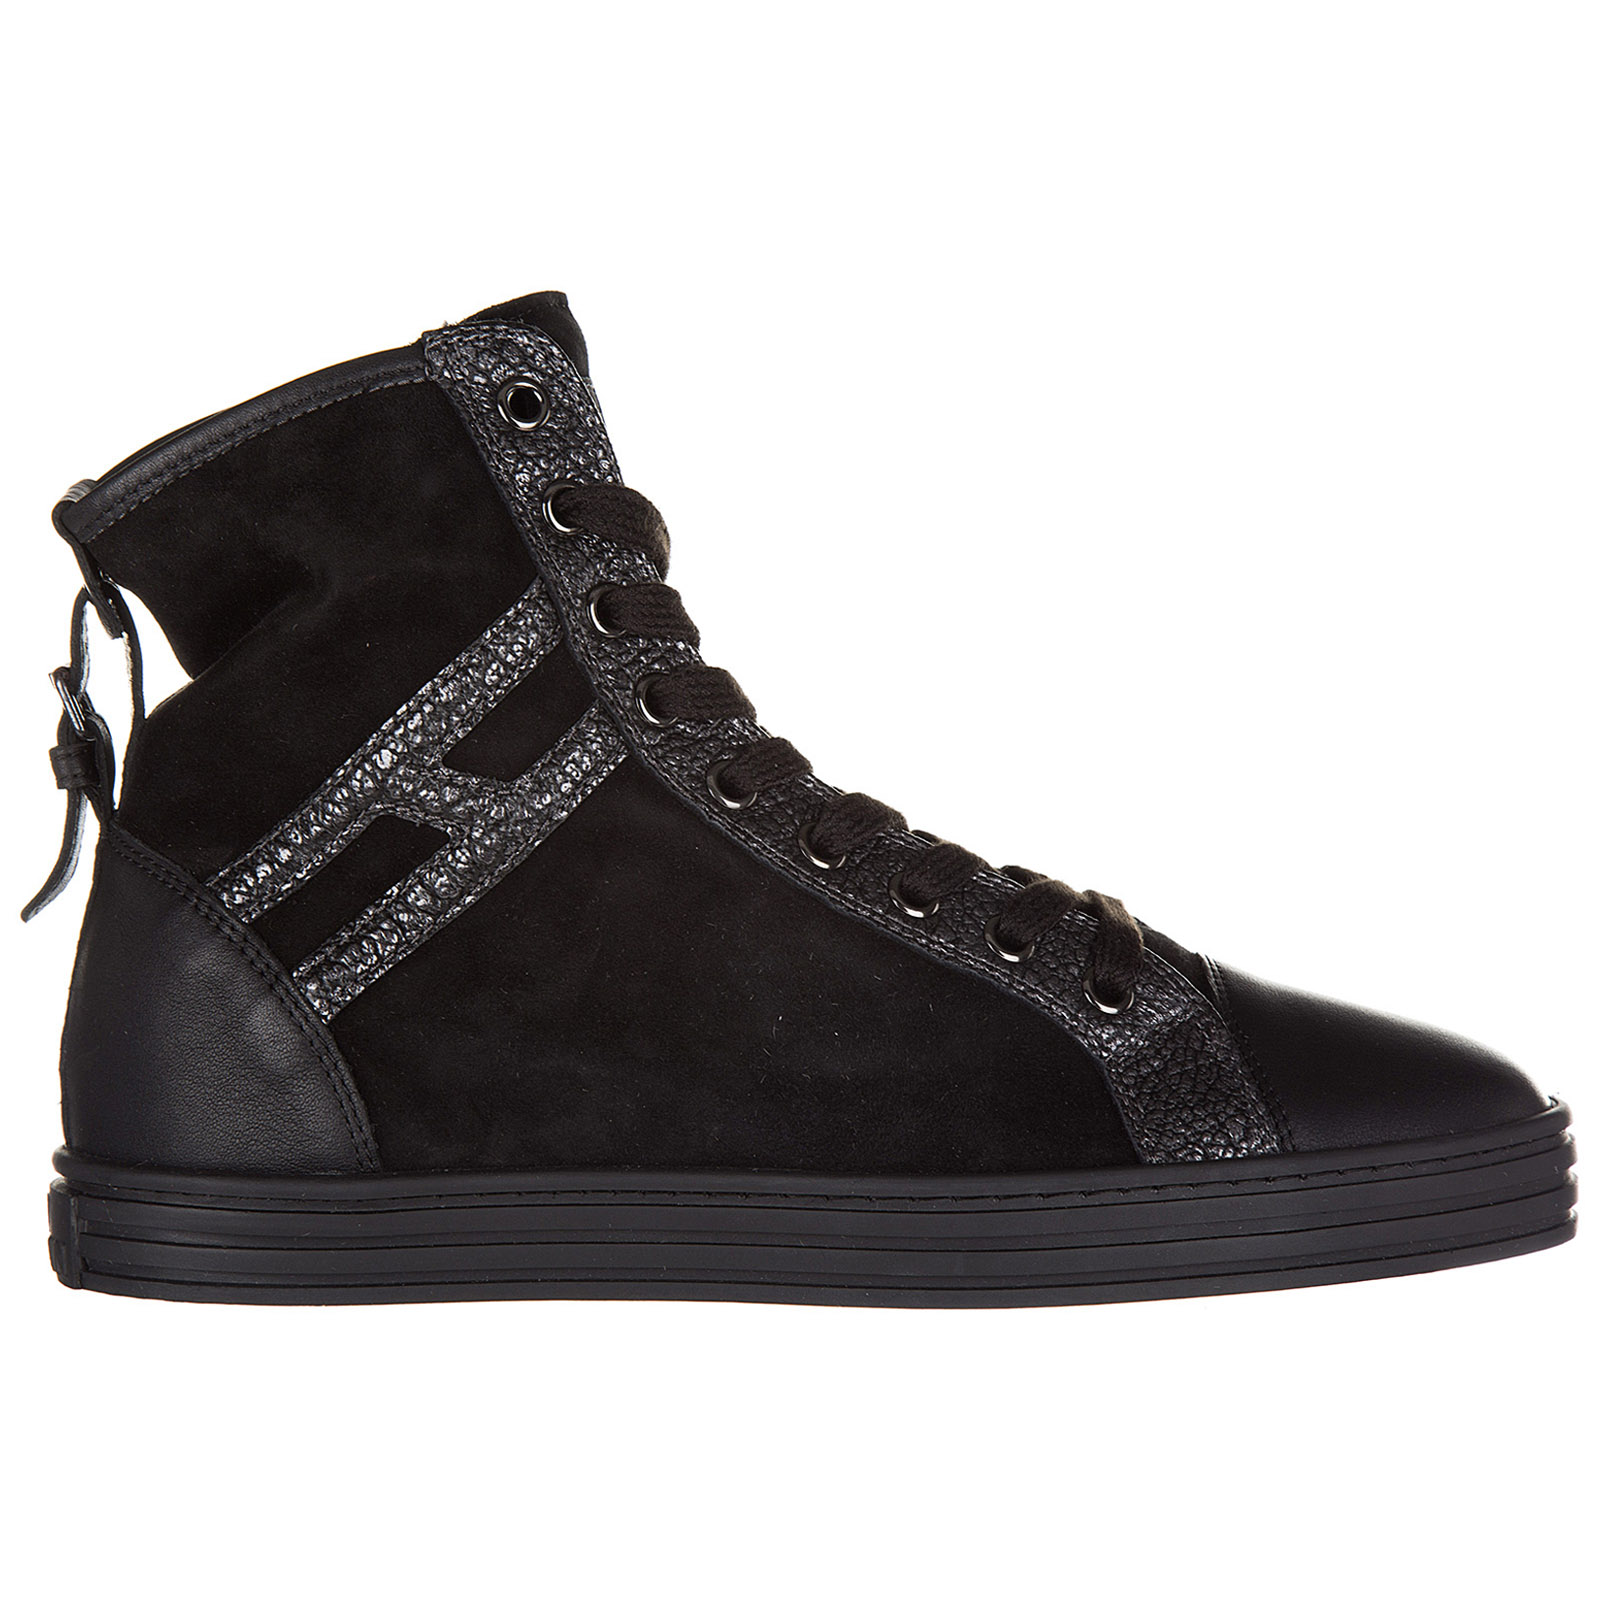 Hogan Rebel Womens Shoes High Top Suede Trainers Sneakers R182 In Black  Modesens-9036